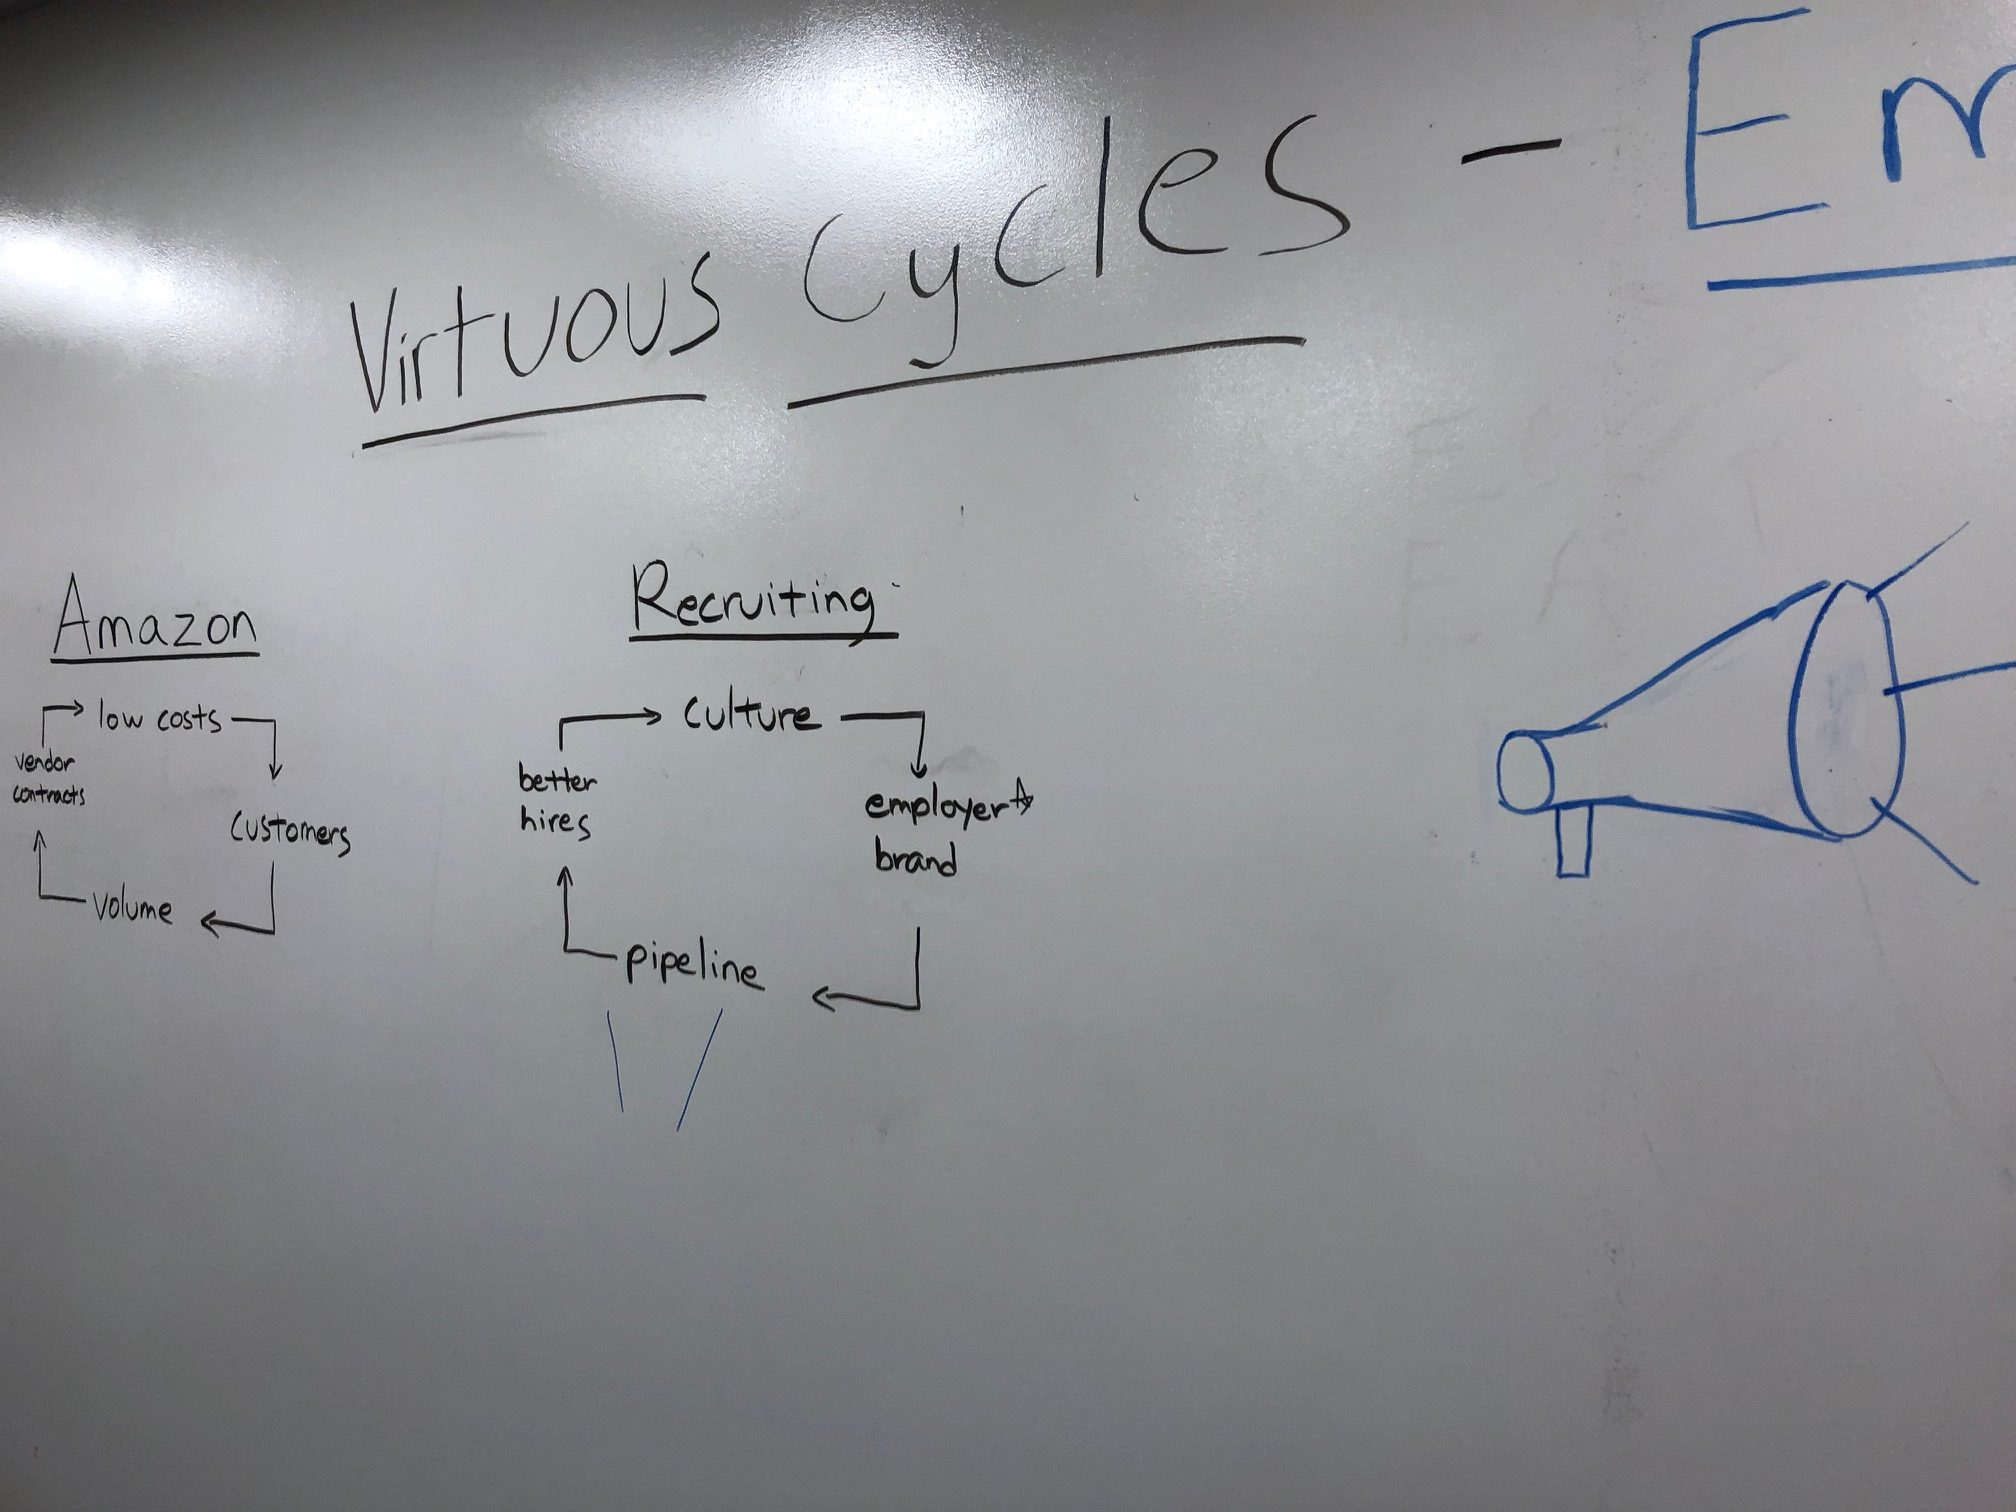 Whiteboard Wednesdays: The Virtuous Circle of Employee Defined Branding